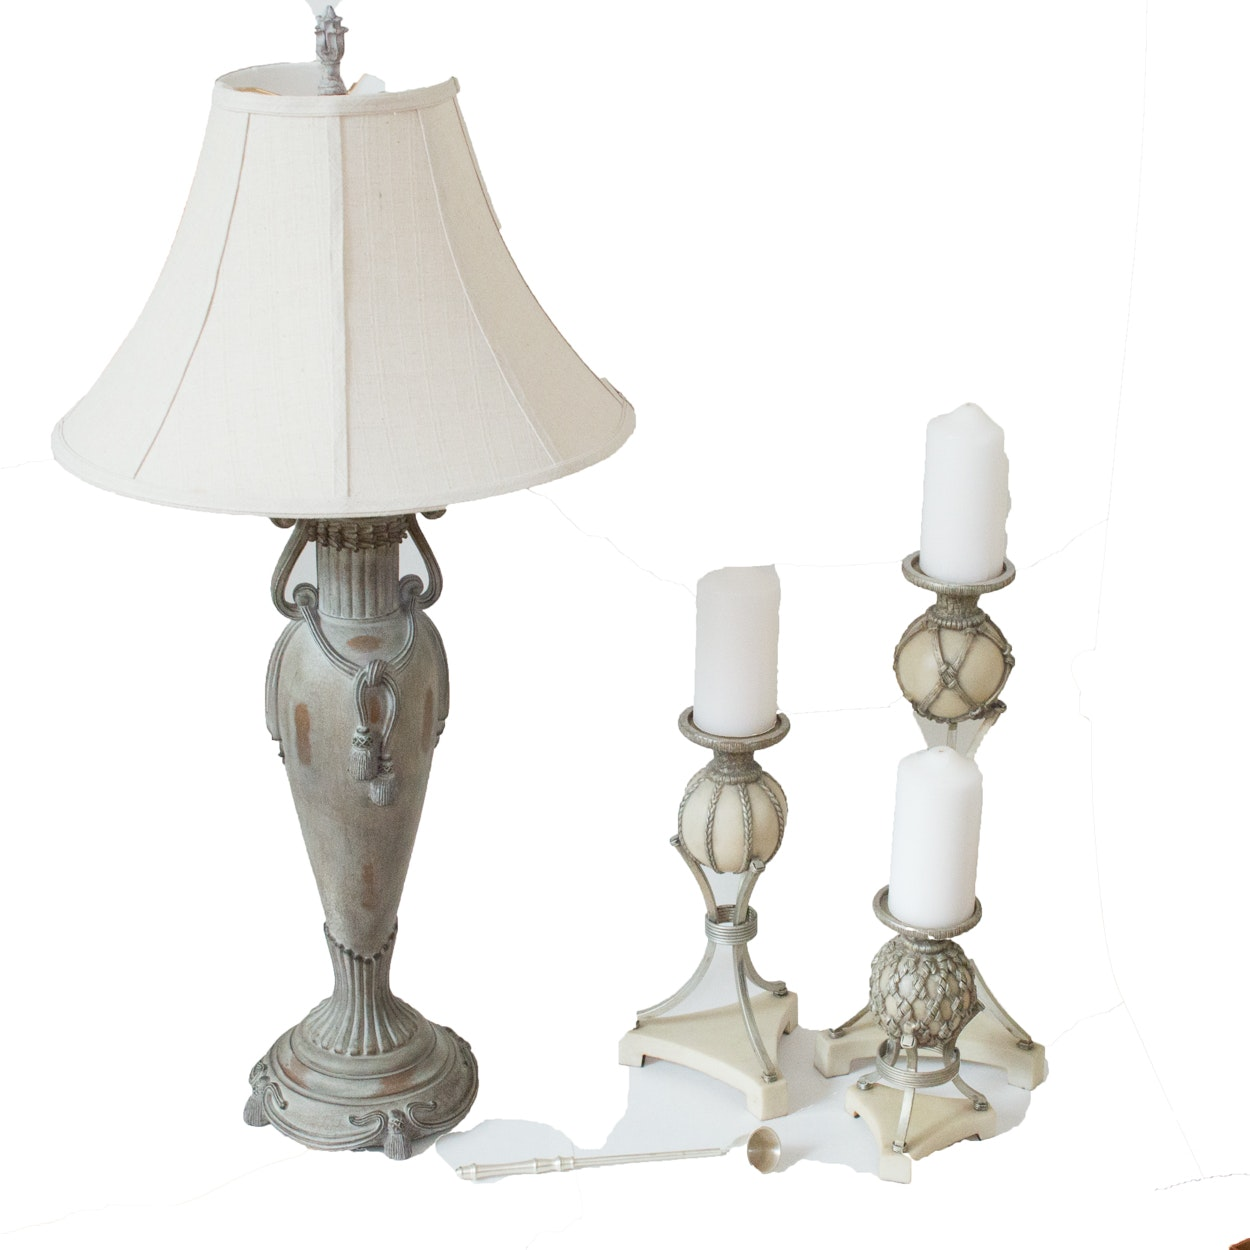 Alabaster Weave Candleholders and Lamp